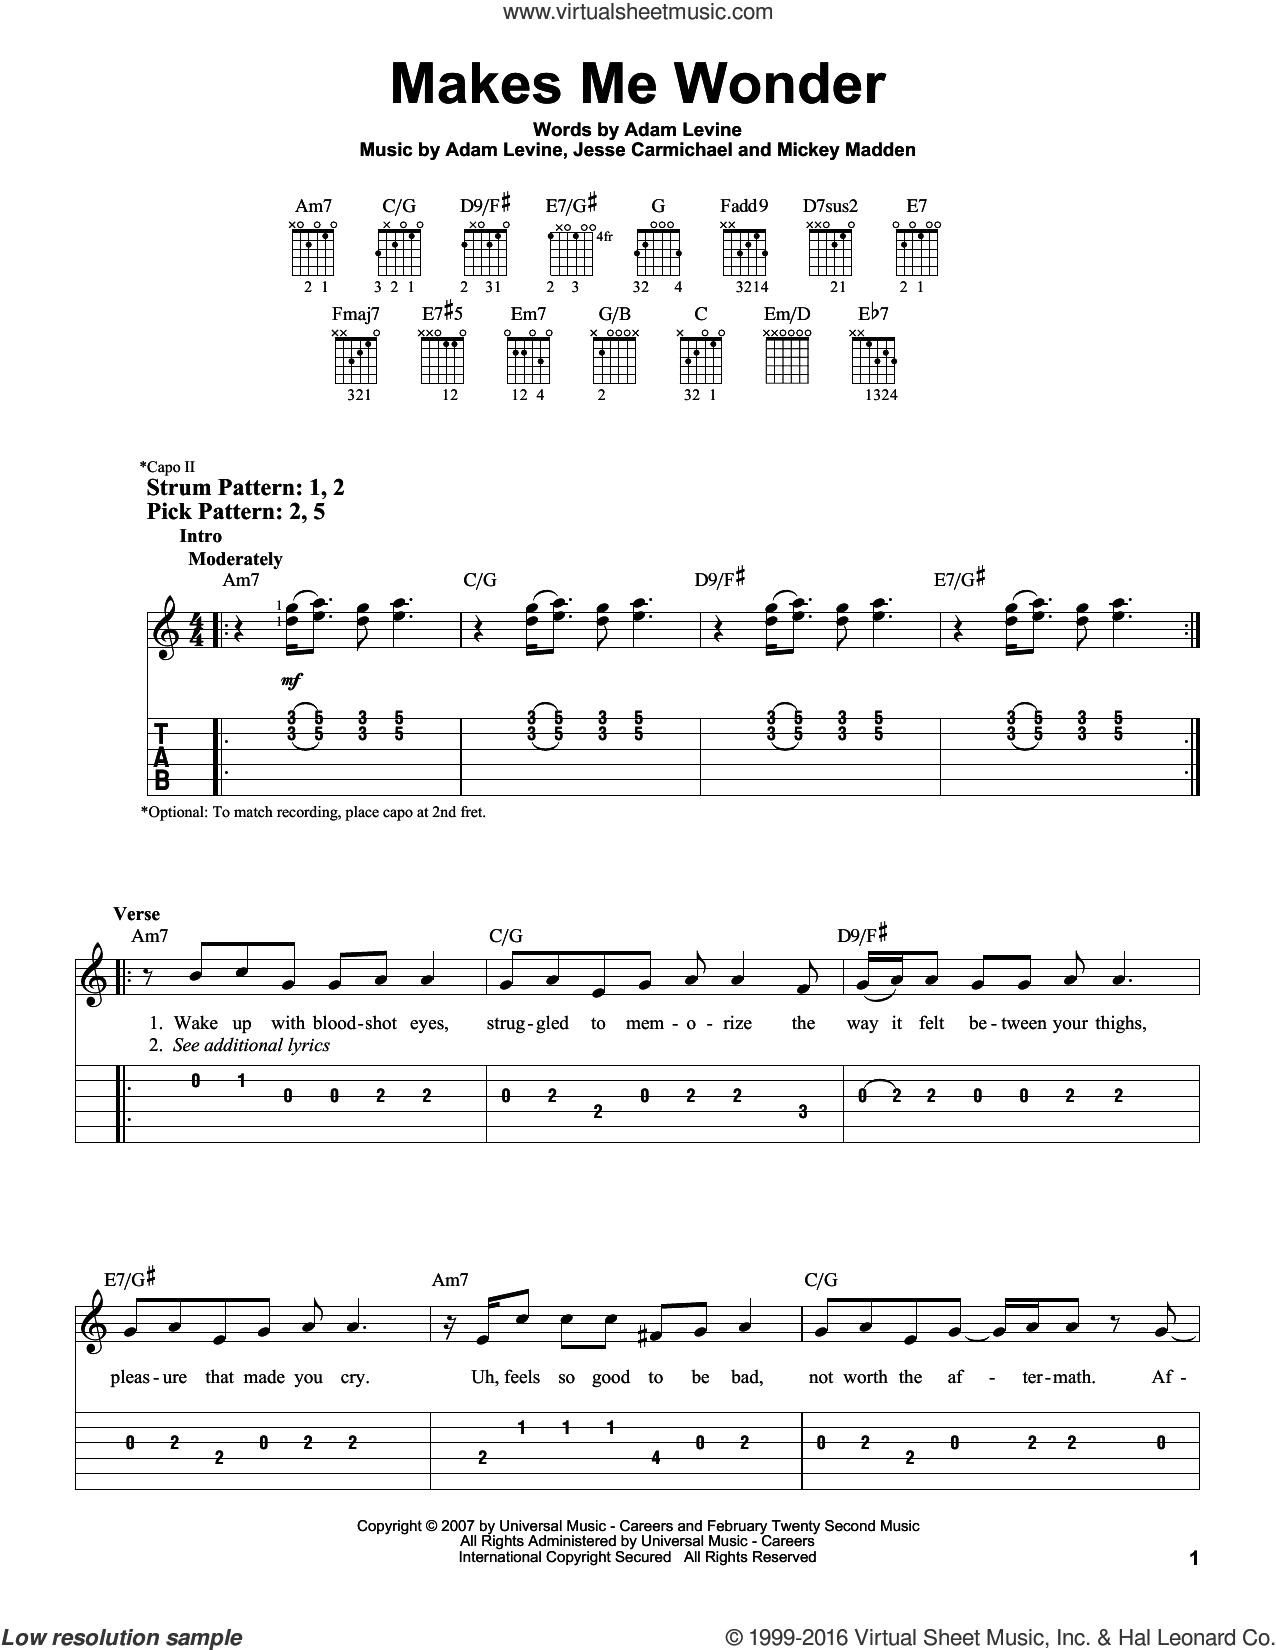 Makes Me Wonder sheet music for guitar solo (easy tablature) by Michael Madden